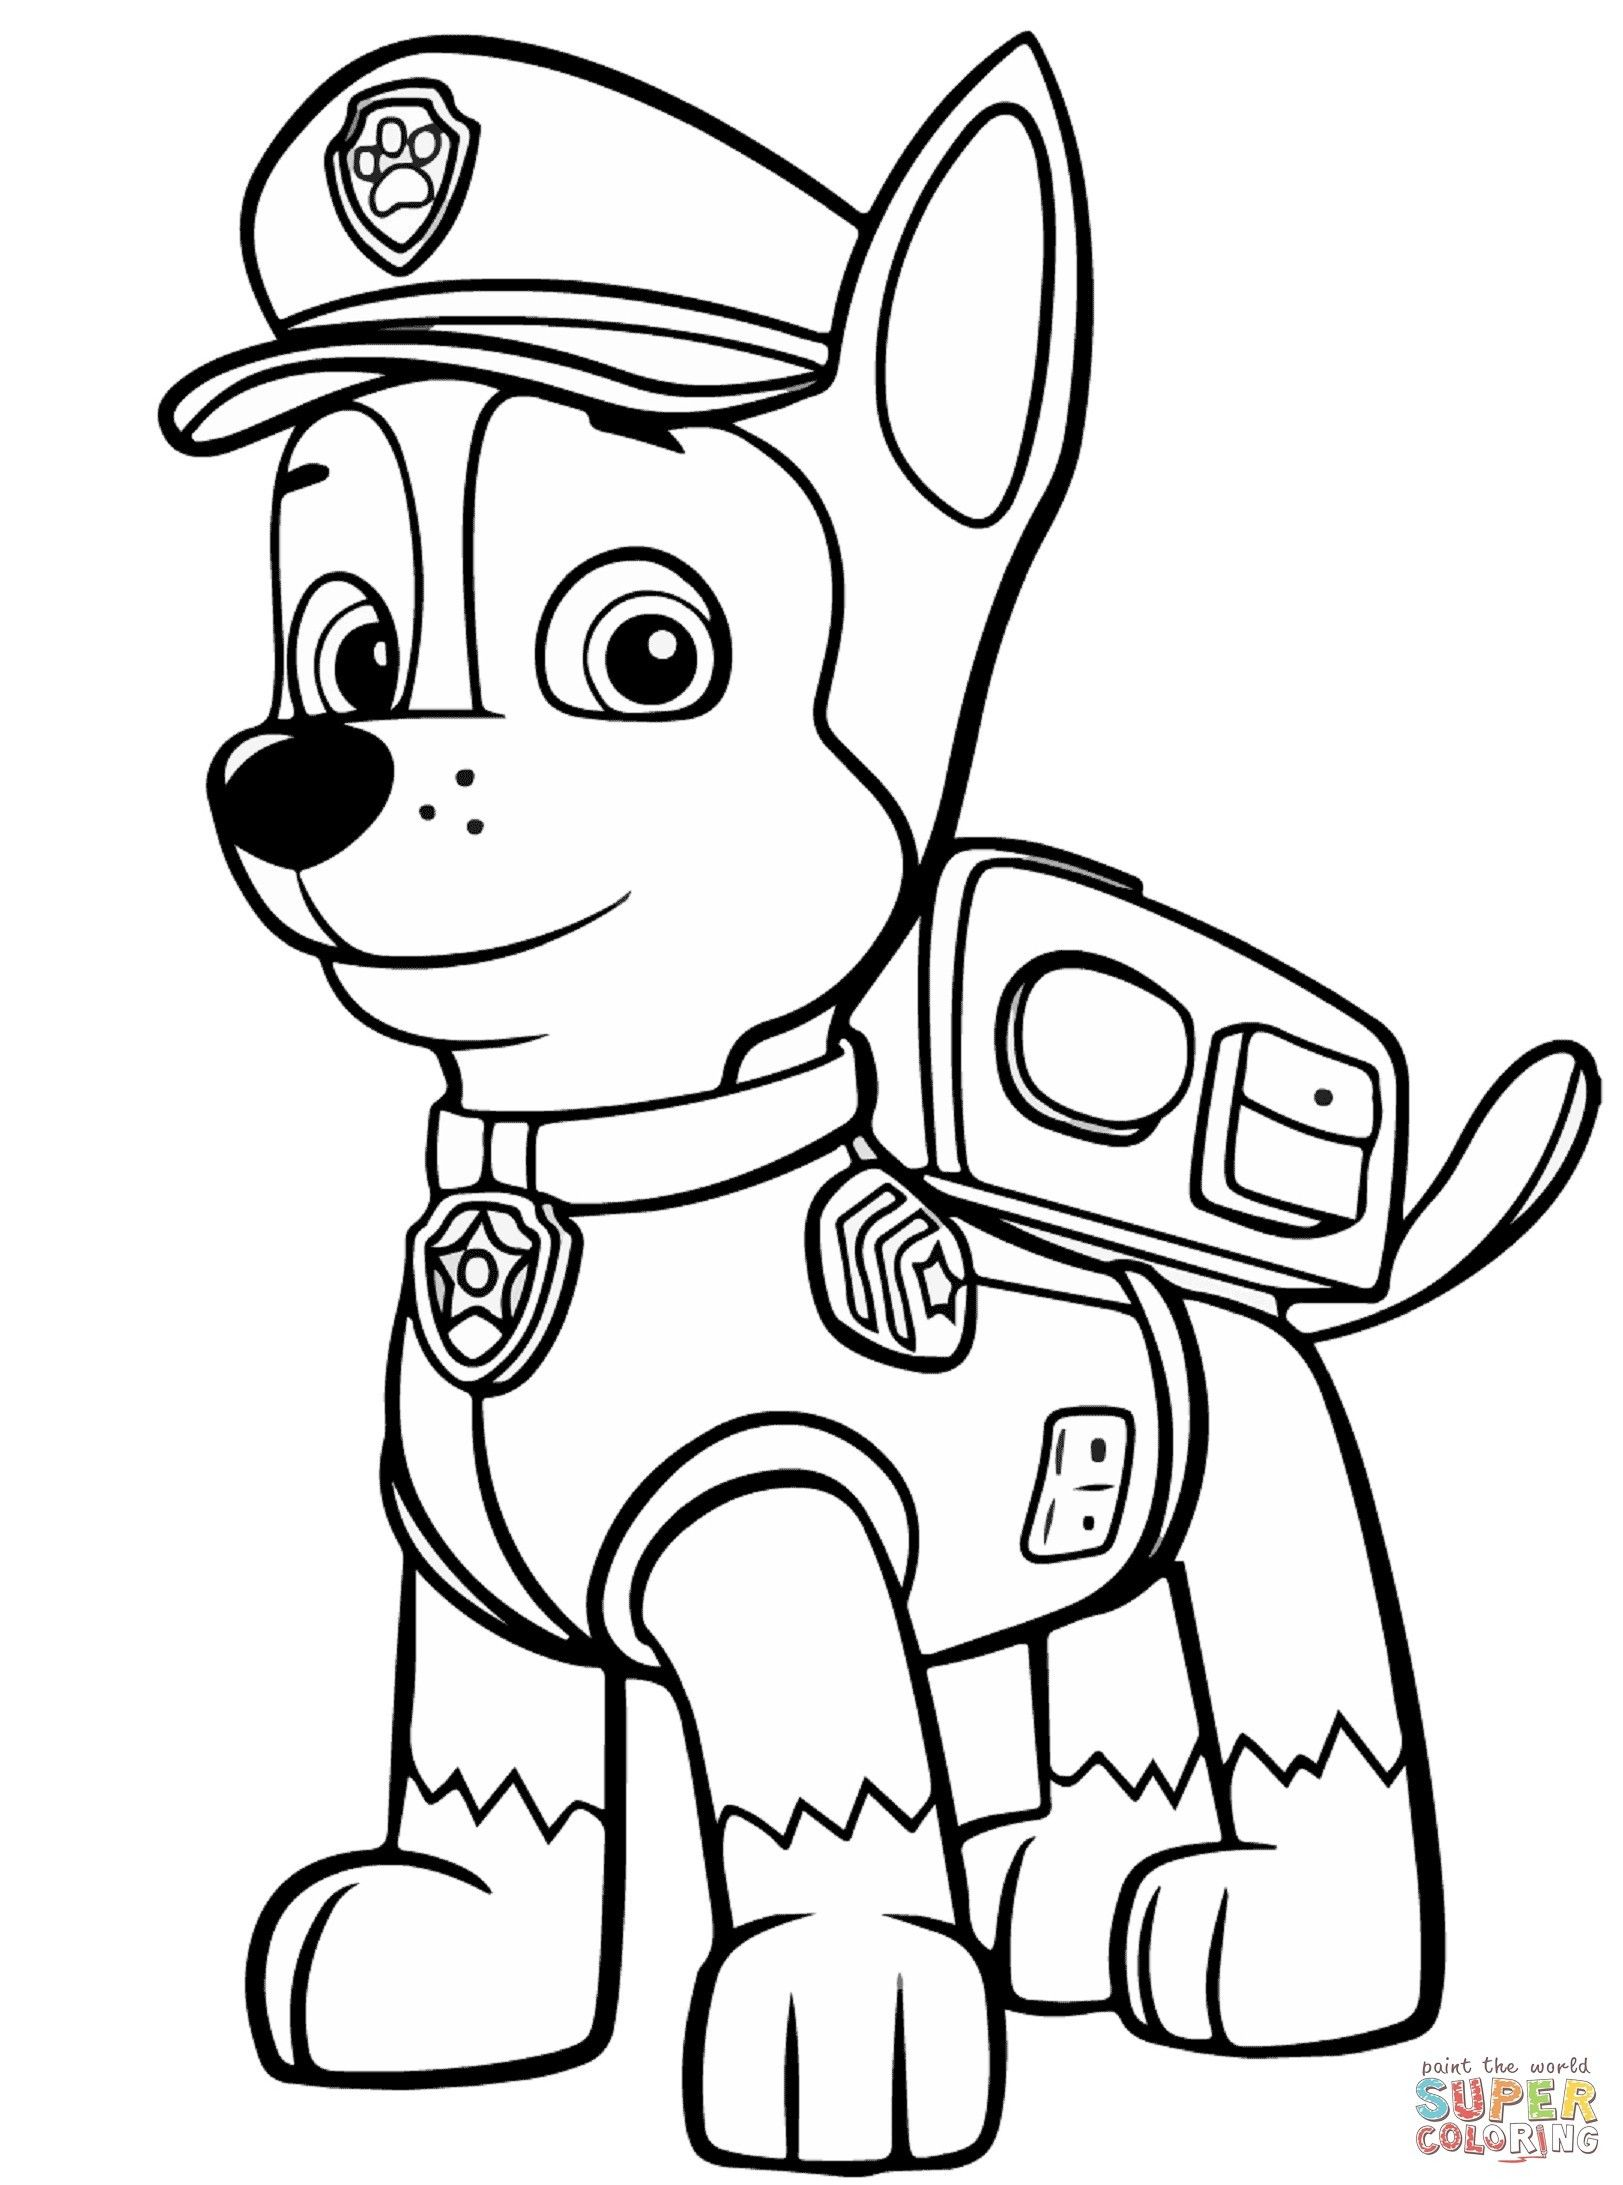 Paw Patrol Coloring Sheets Best Of Photos Coloring Pages Paw Patrol Coloring Pages Coloring Page Paw Patrol Coloring Pages Paw Patrol Coloring Chase Paw Patrol